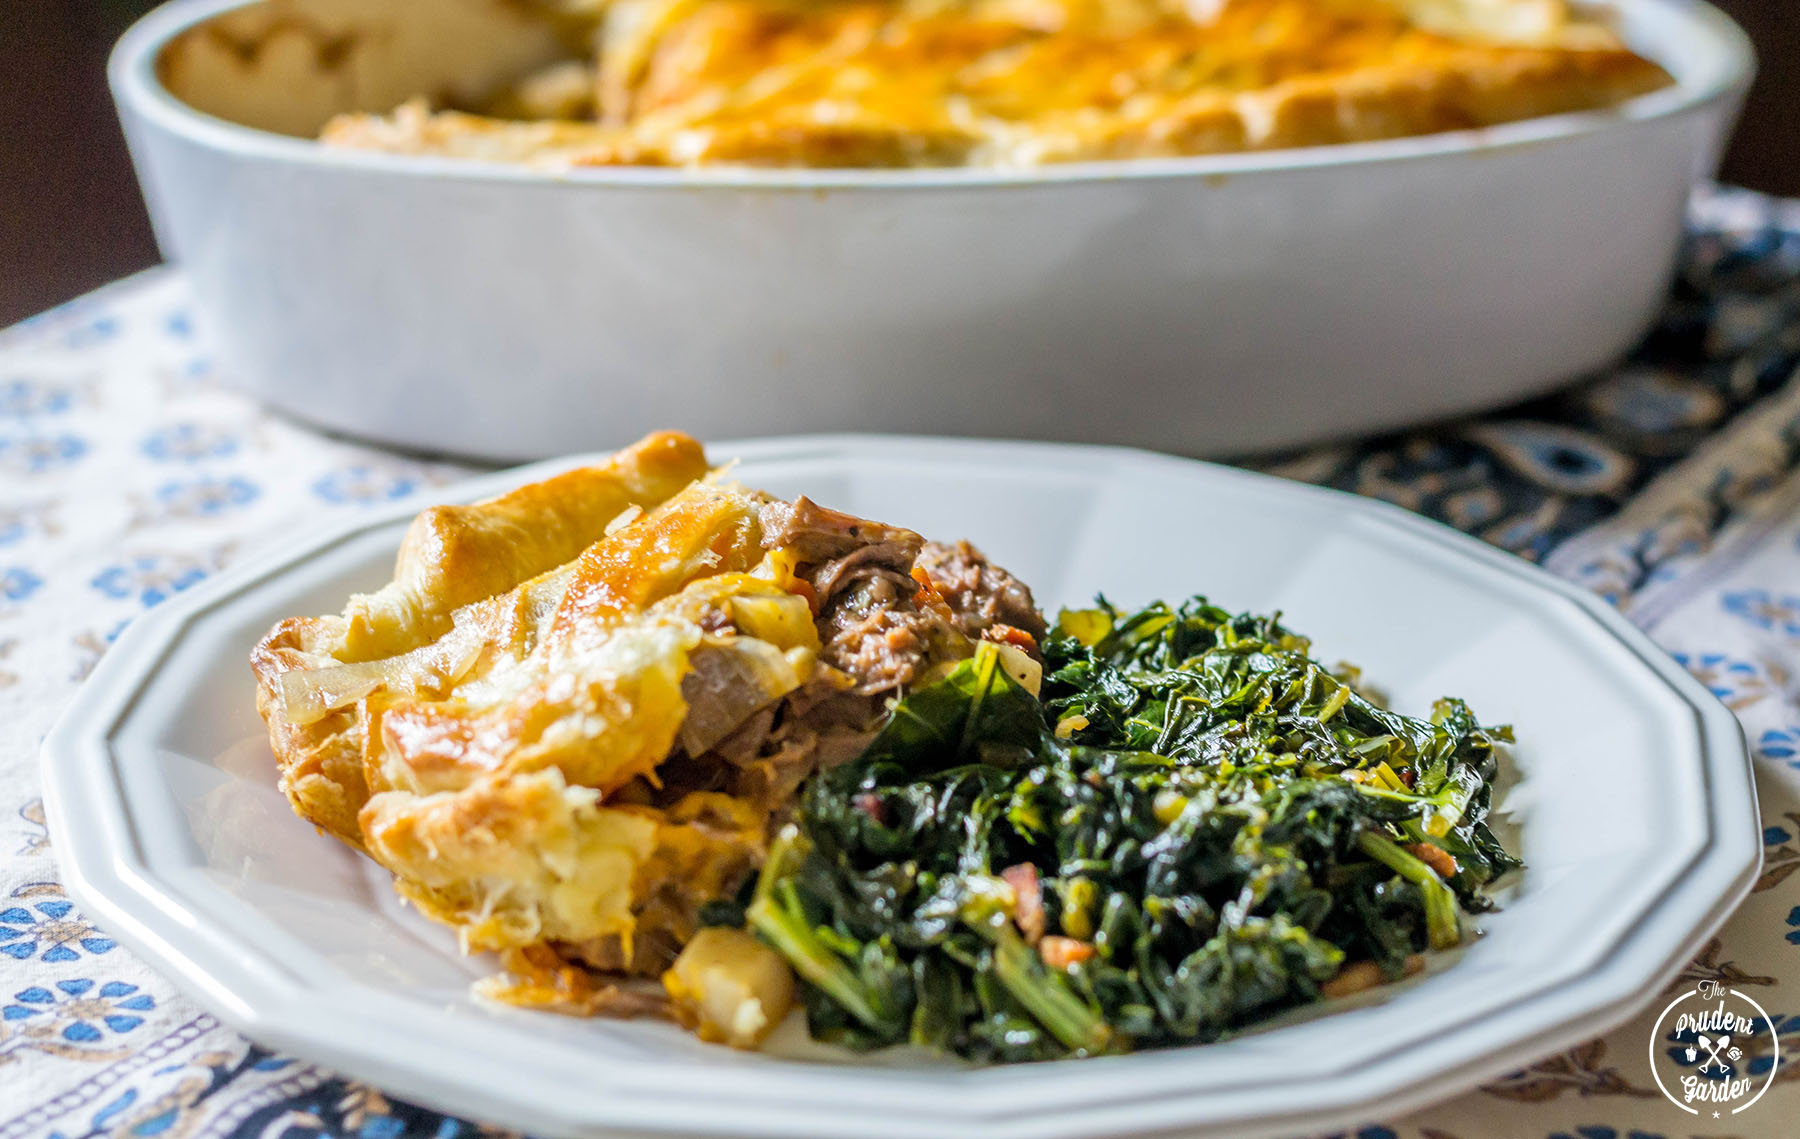 Beef And Beer Pot Pie With Turnips